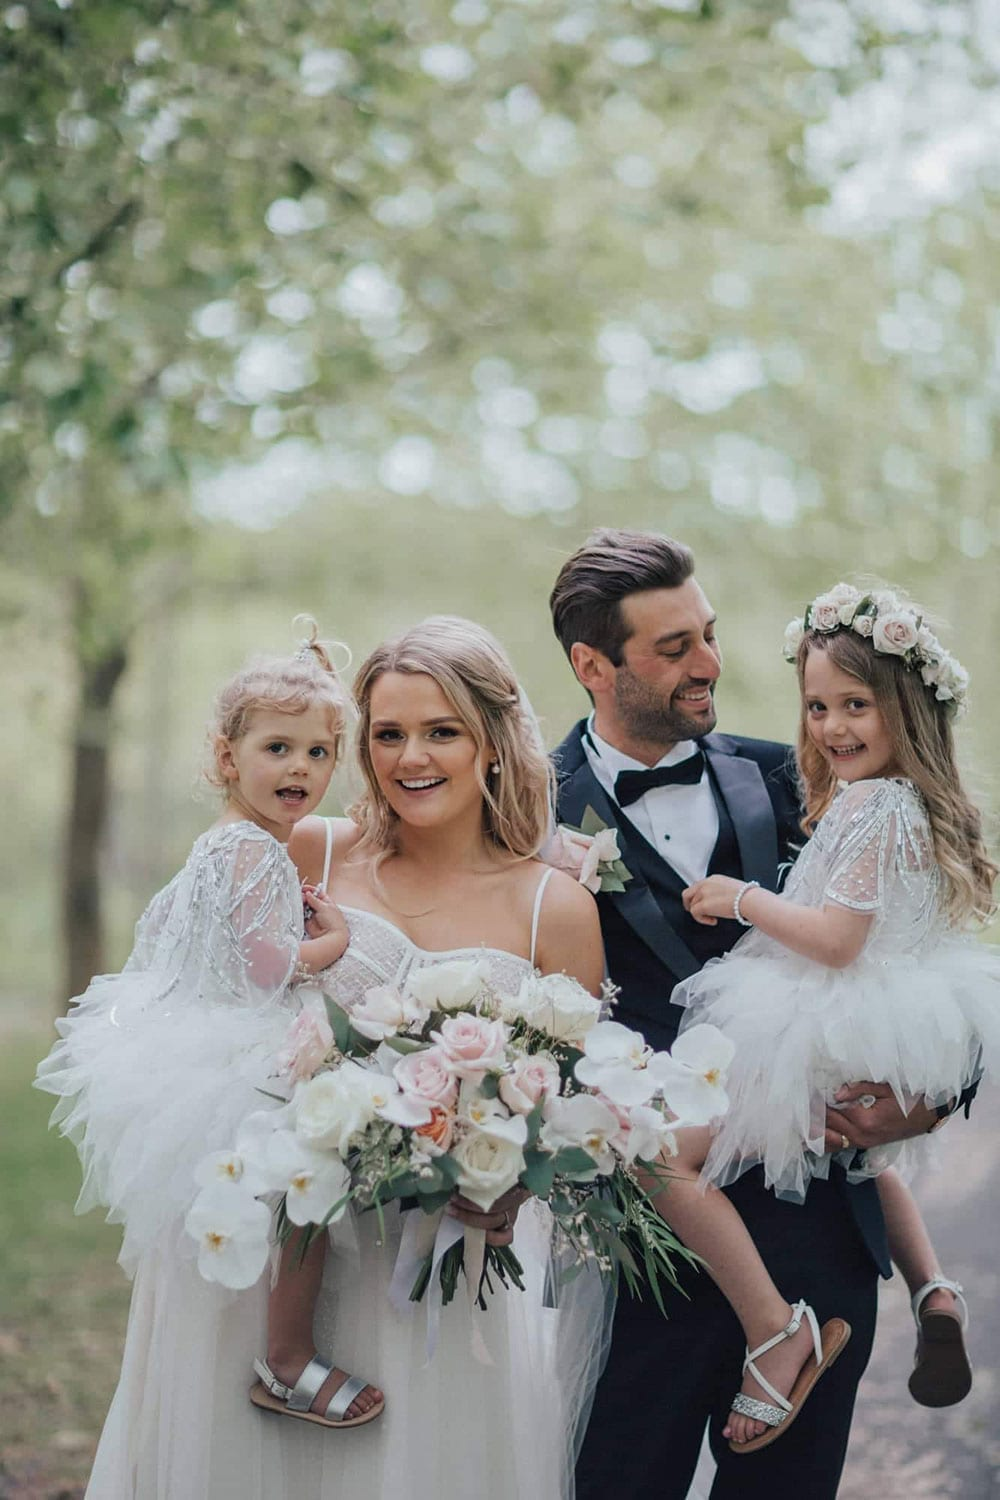 Vinka Design Features Real Weddings - bride wearing custom made gown with two different beadings incorporated into a fitted, structured bodice, and dreamy layered tulle skirt. Bride and groom with children in blossom trees